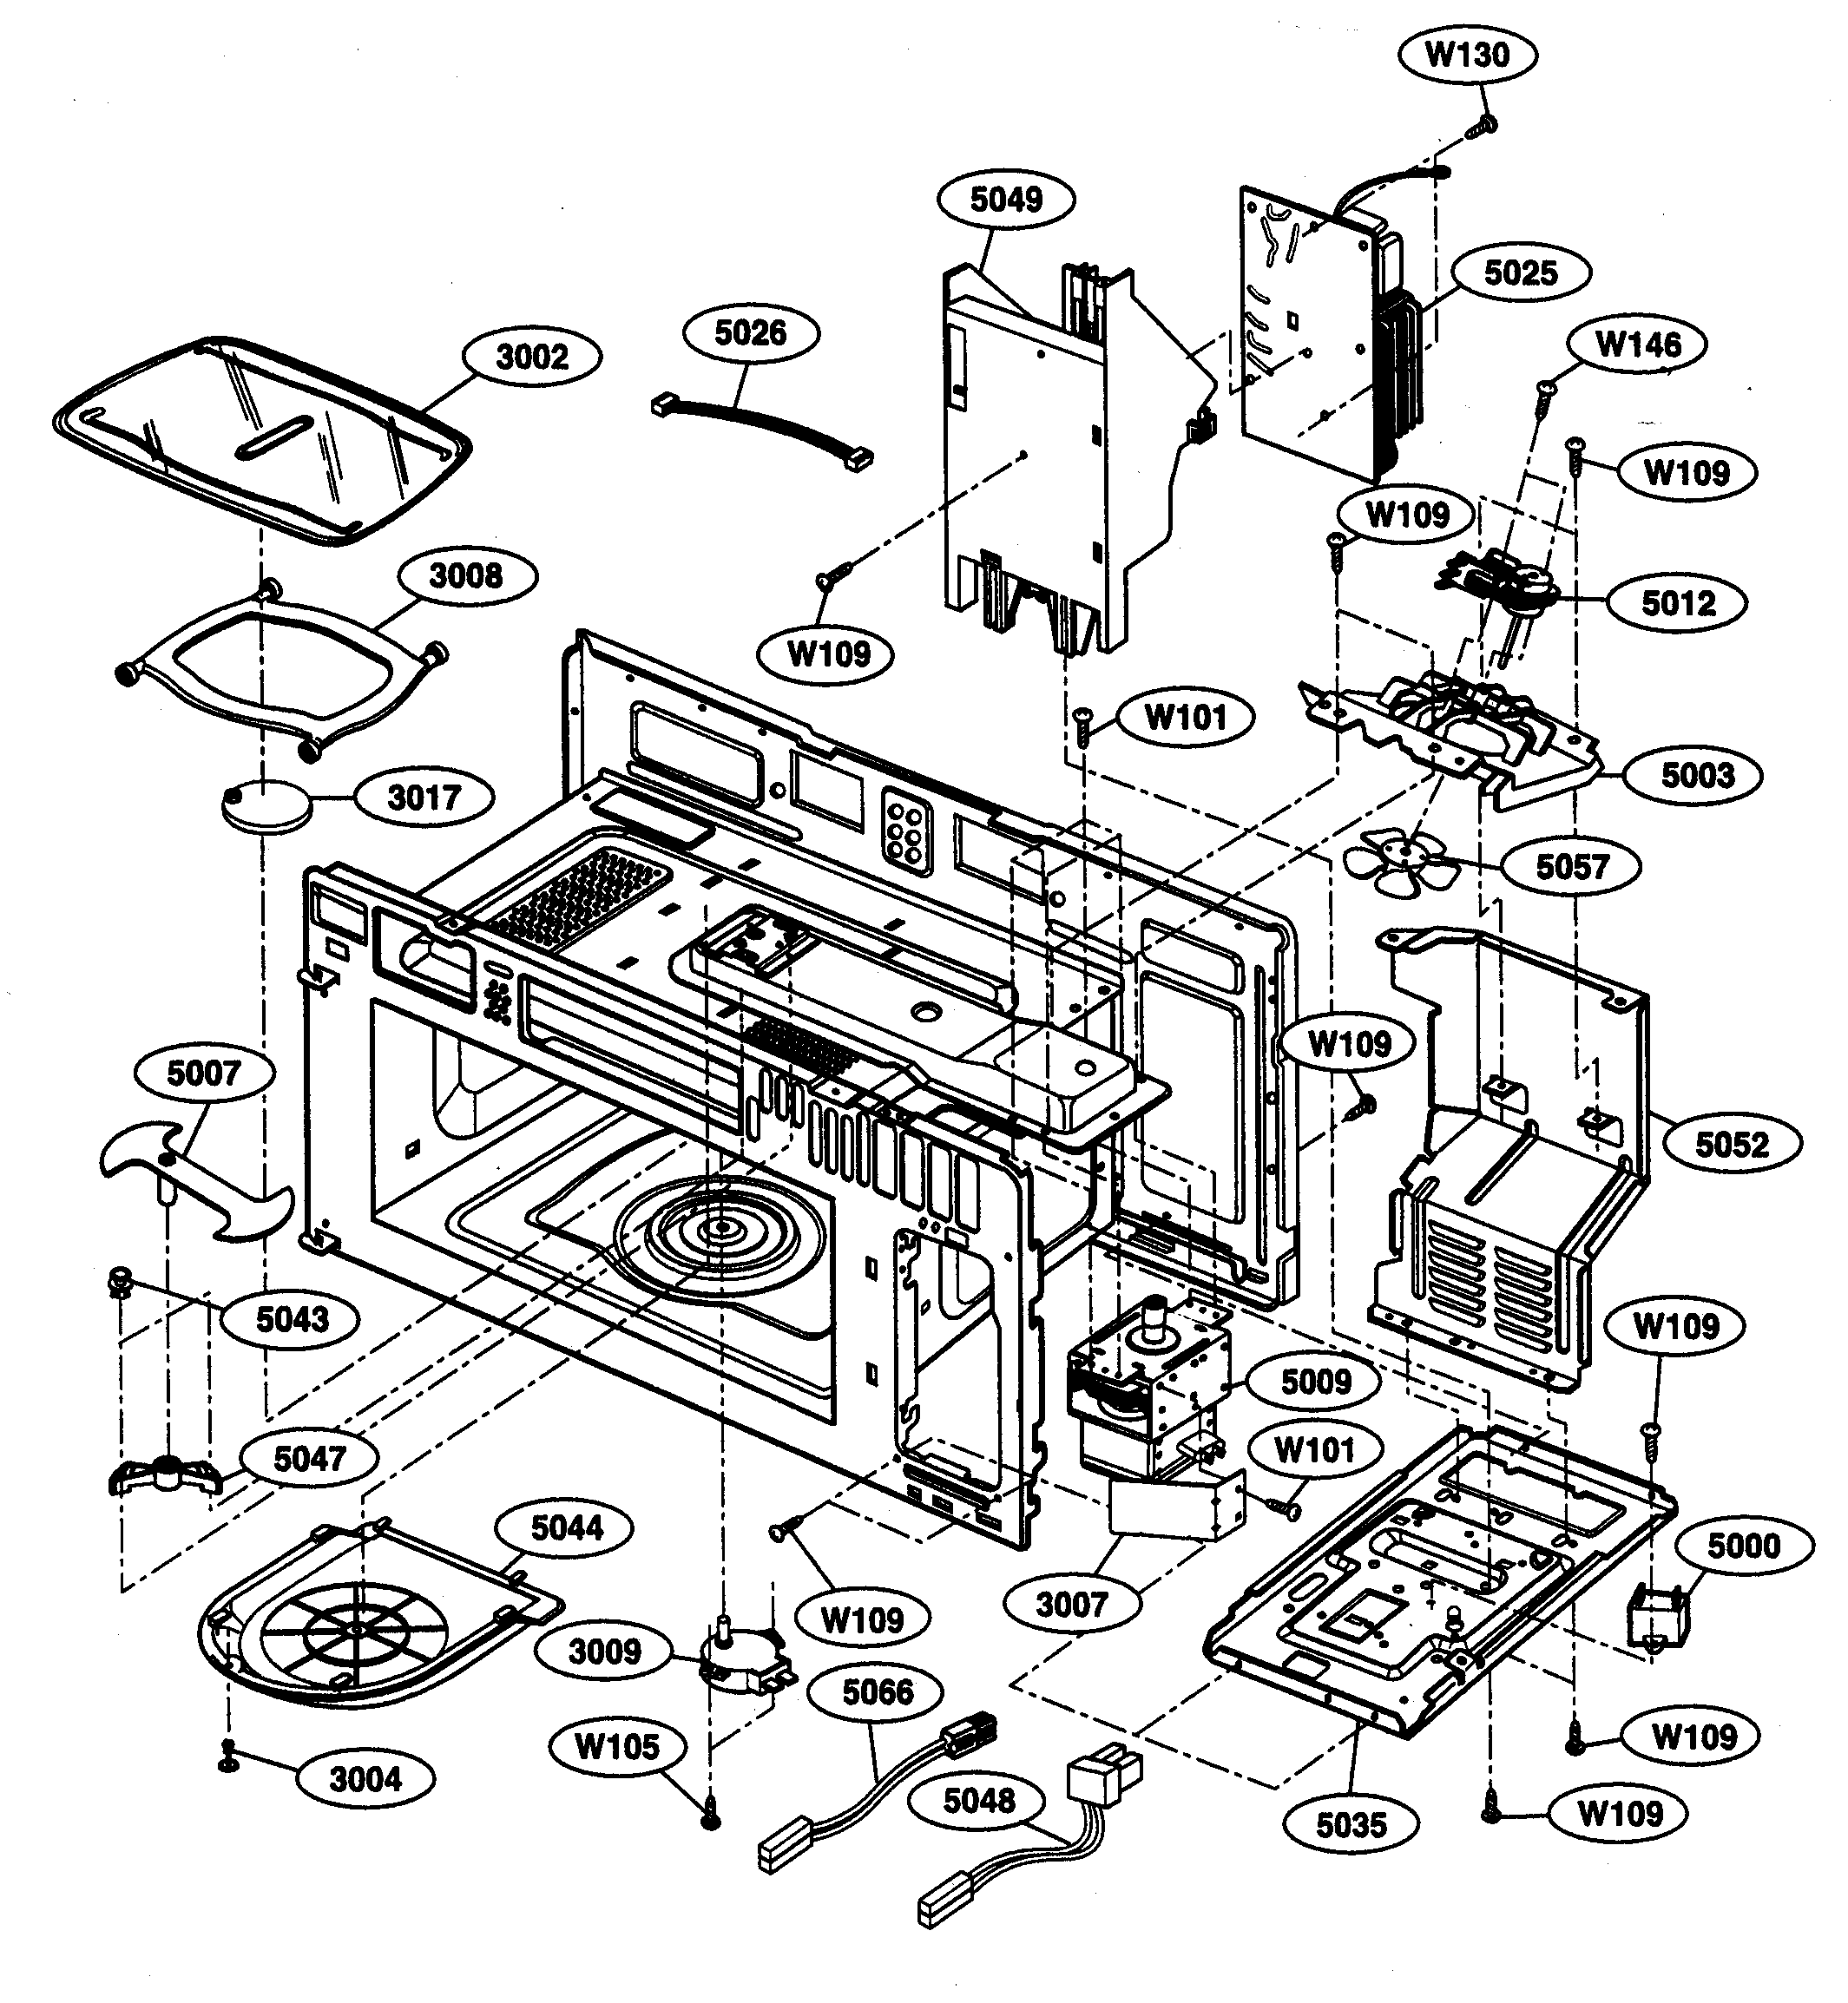 find wiring diagram for lg microwave oven